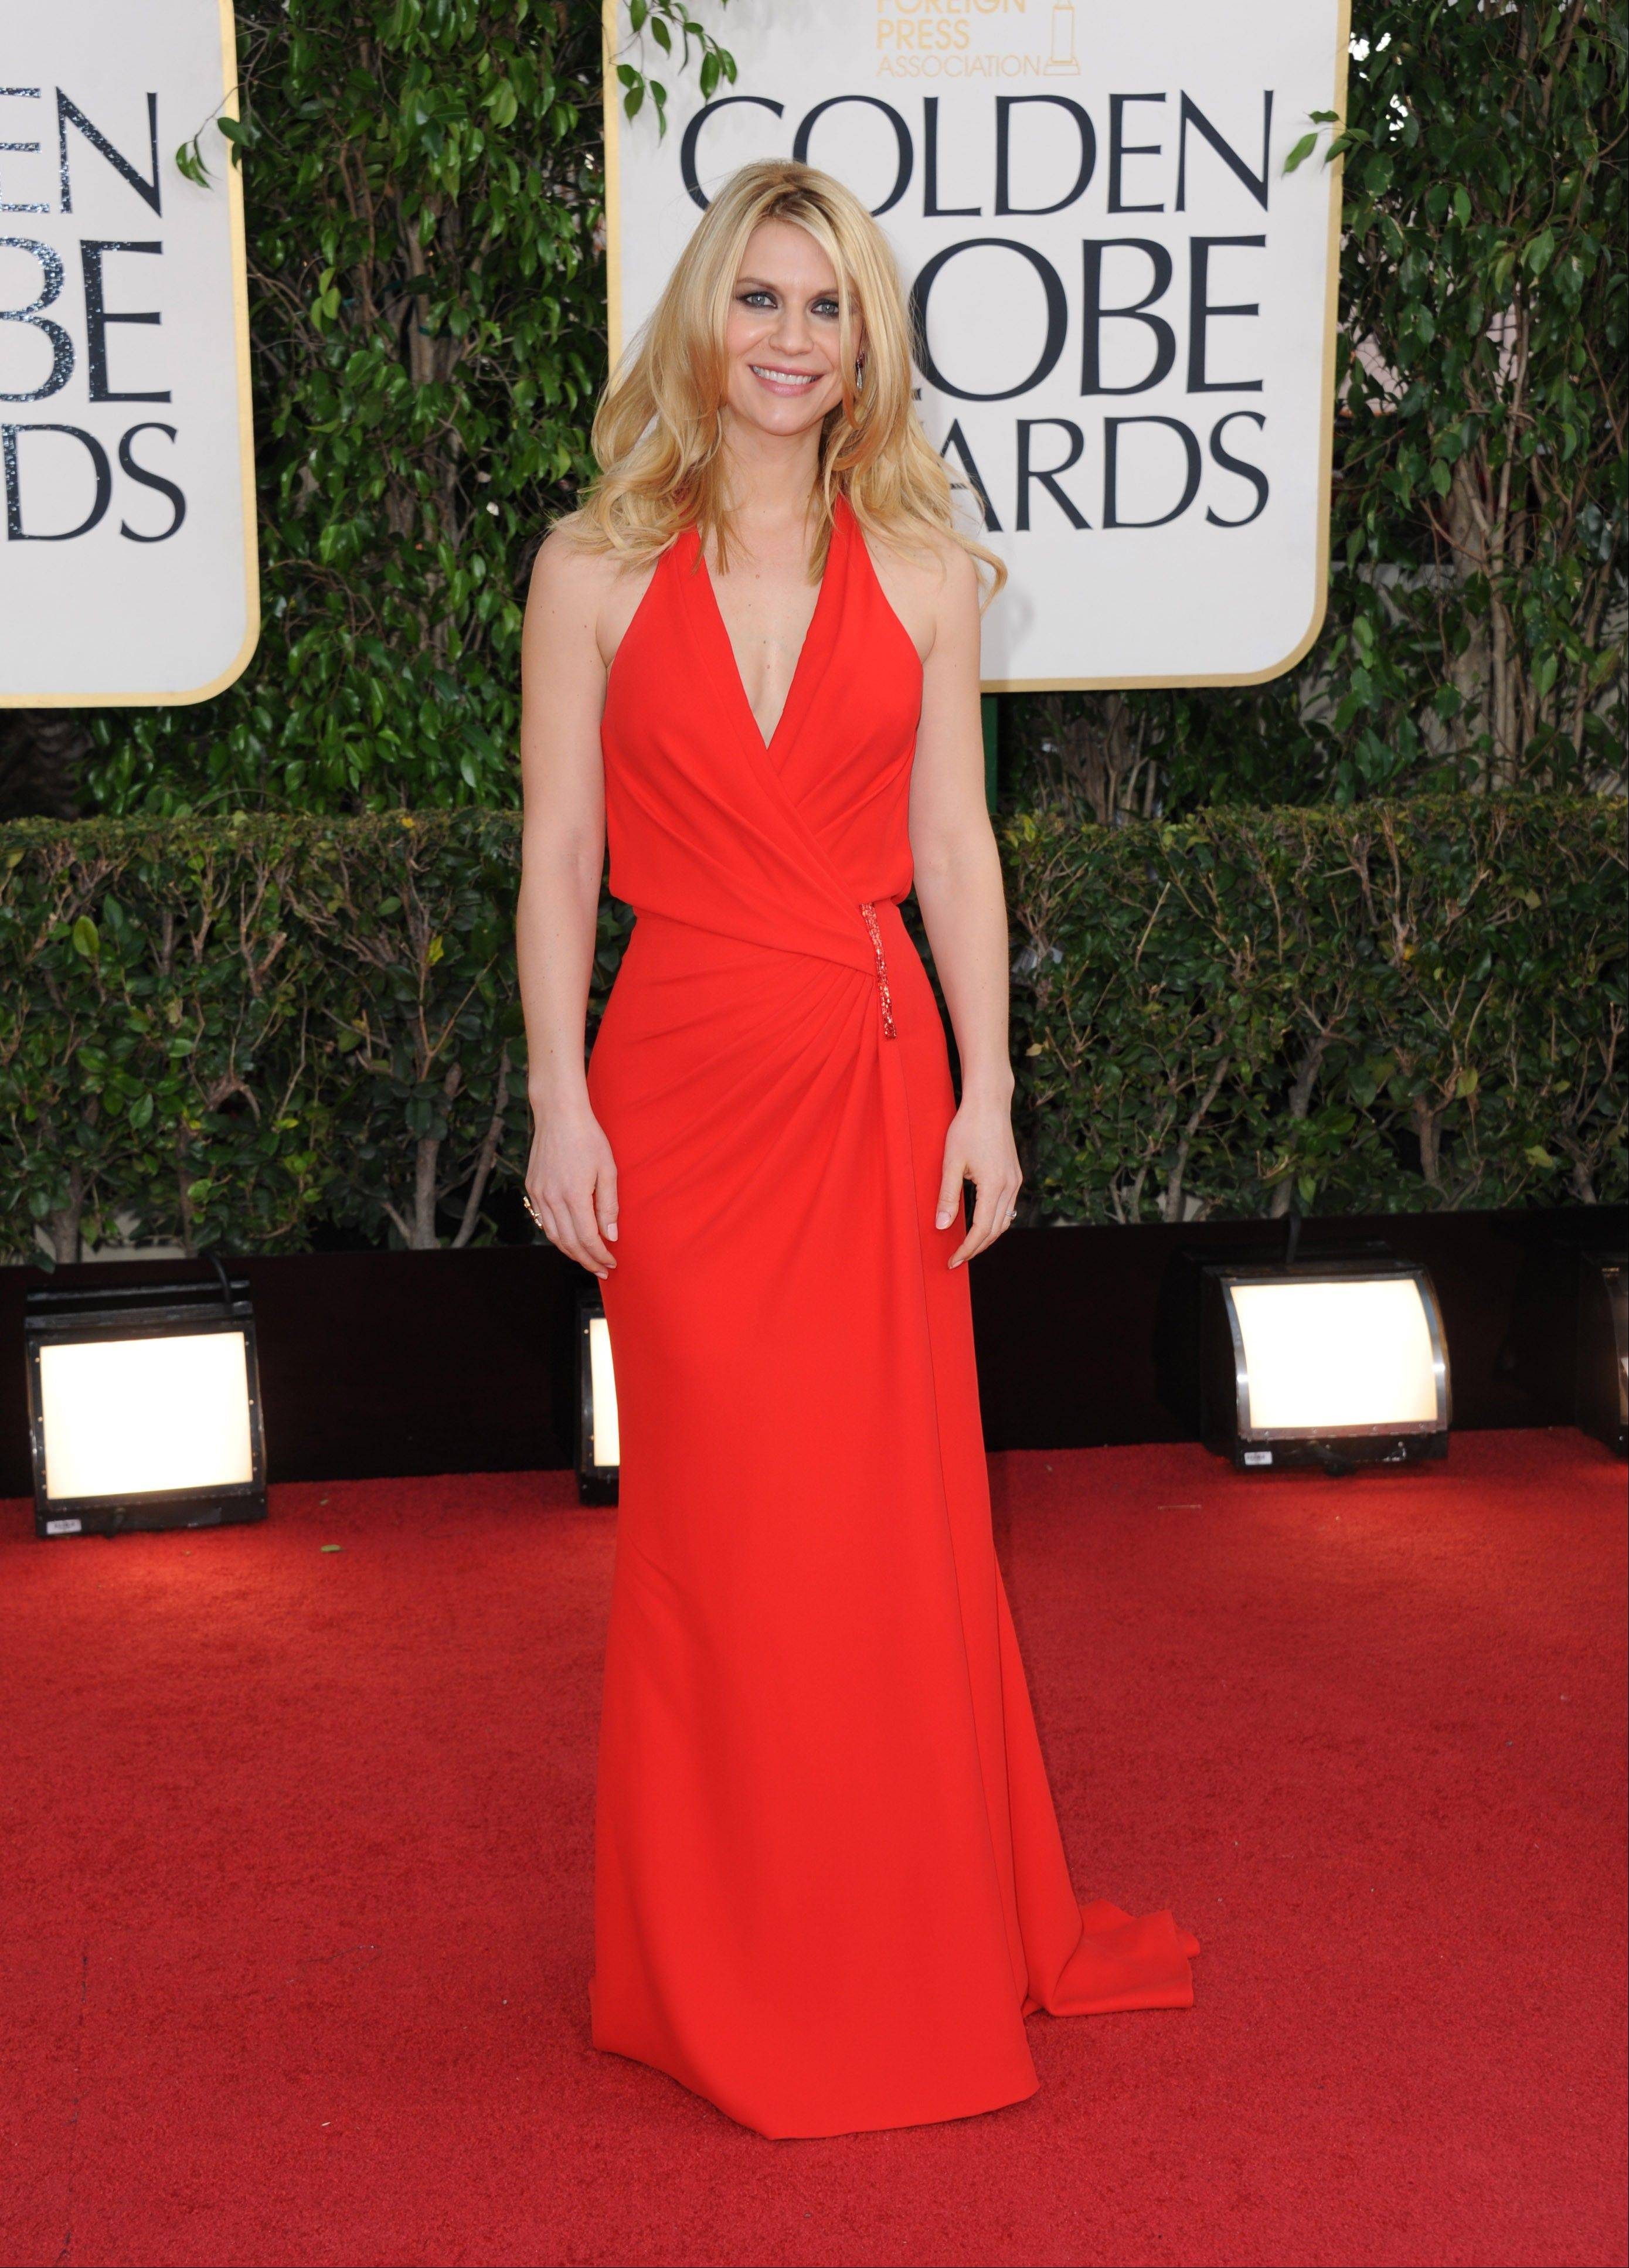 Vintage vibe on the red carpet at Globes